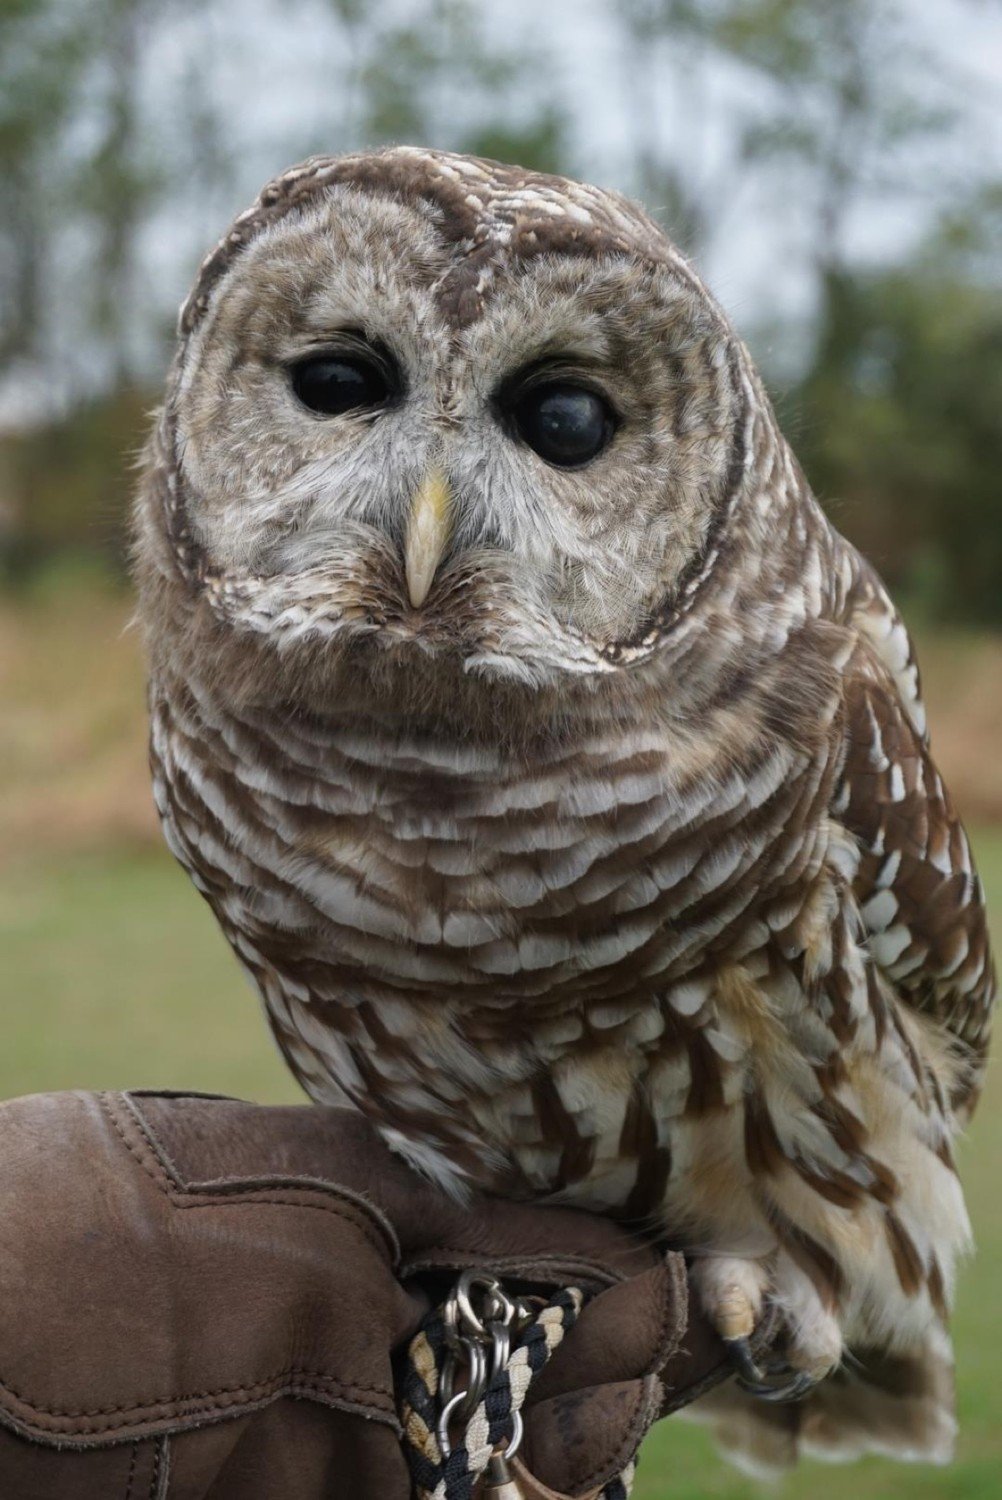 A Barred Owl, one of Audubon's Avian Ambassadors that families can meet during animal interviews at the Audubon Environmental Education Center in Bristol